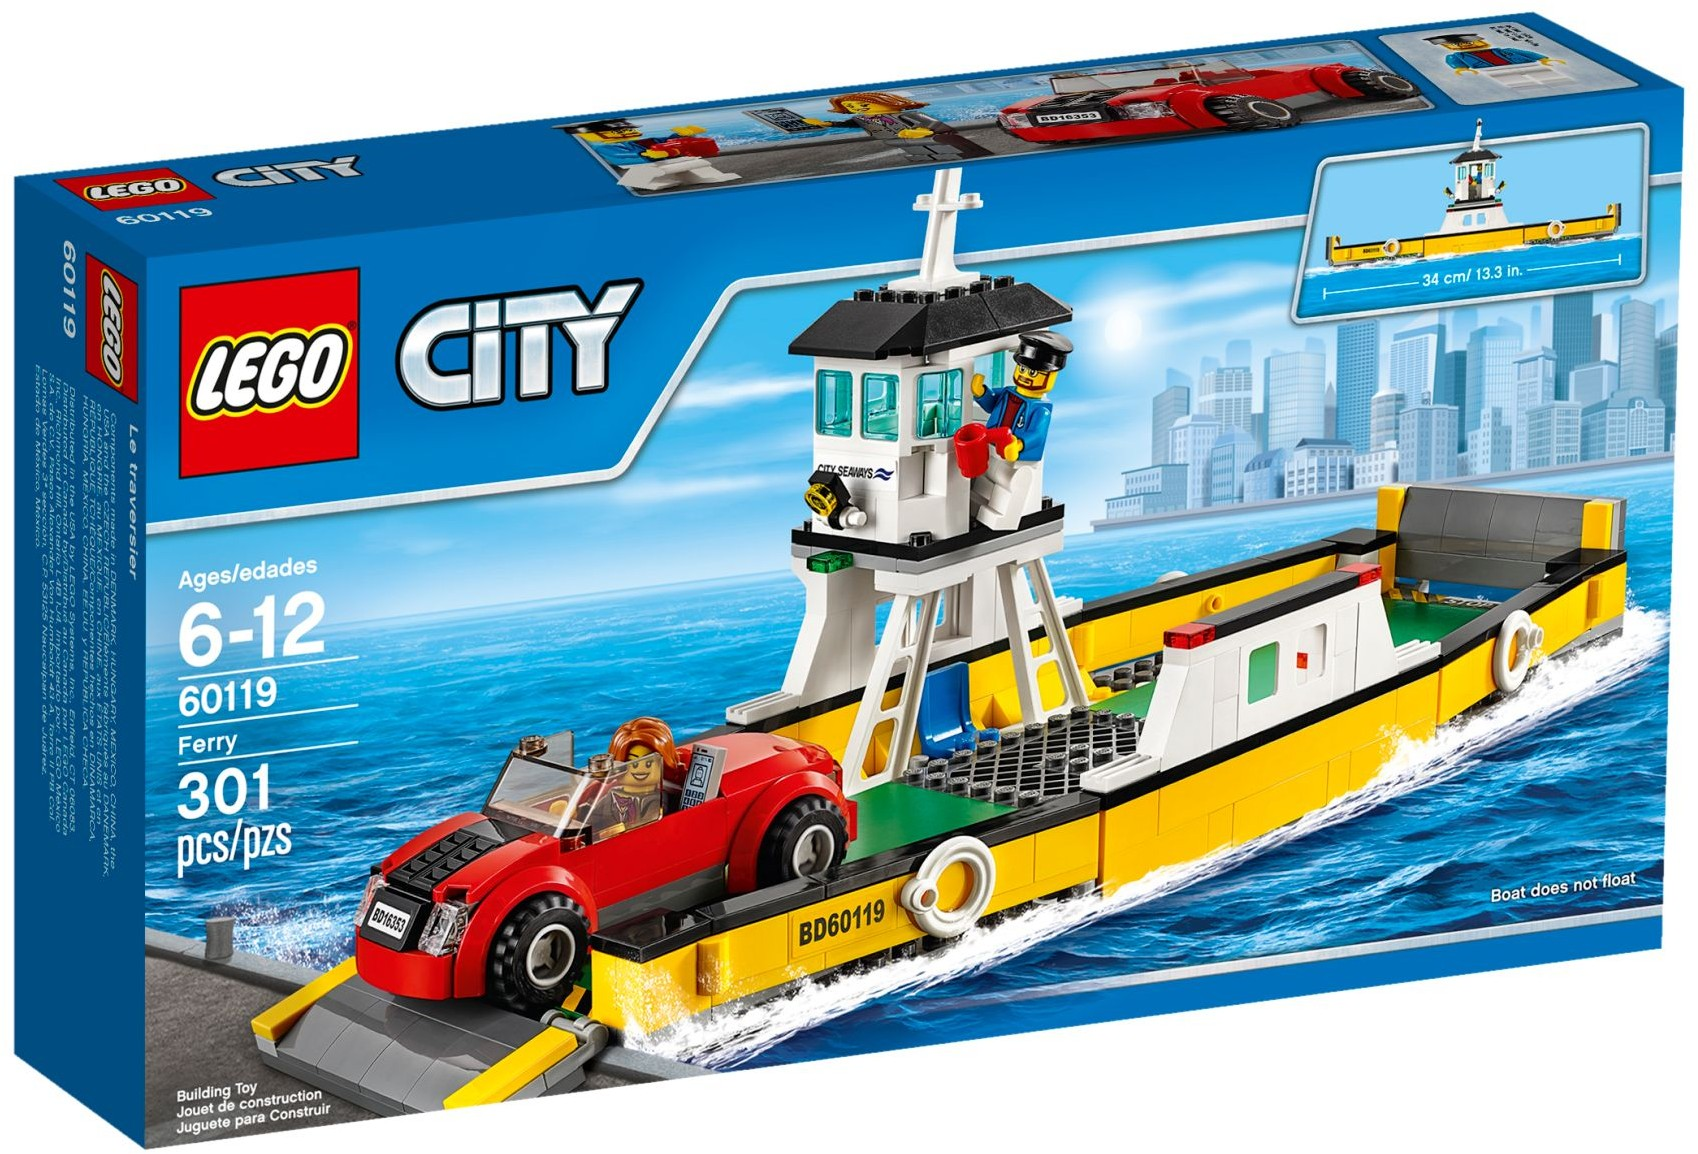 Lego City 60101 Samolot Transportowy Updated 2016 - 3D pictures